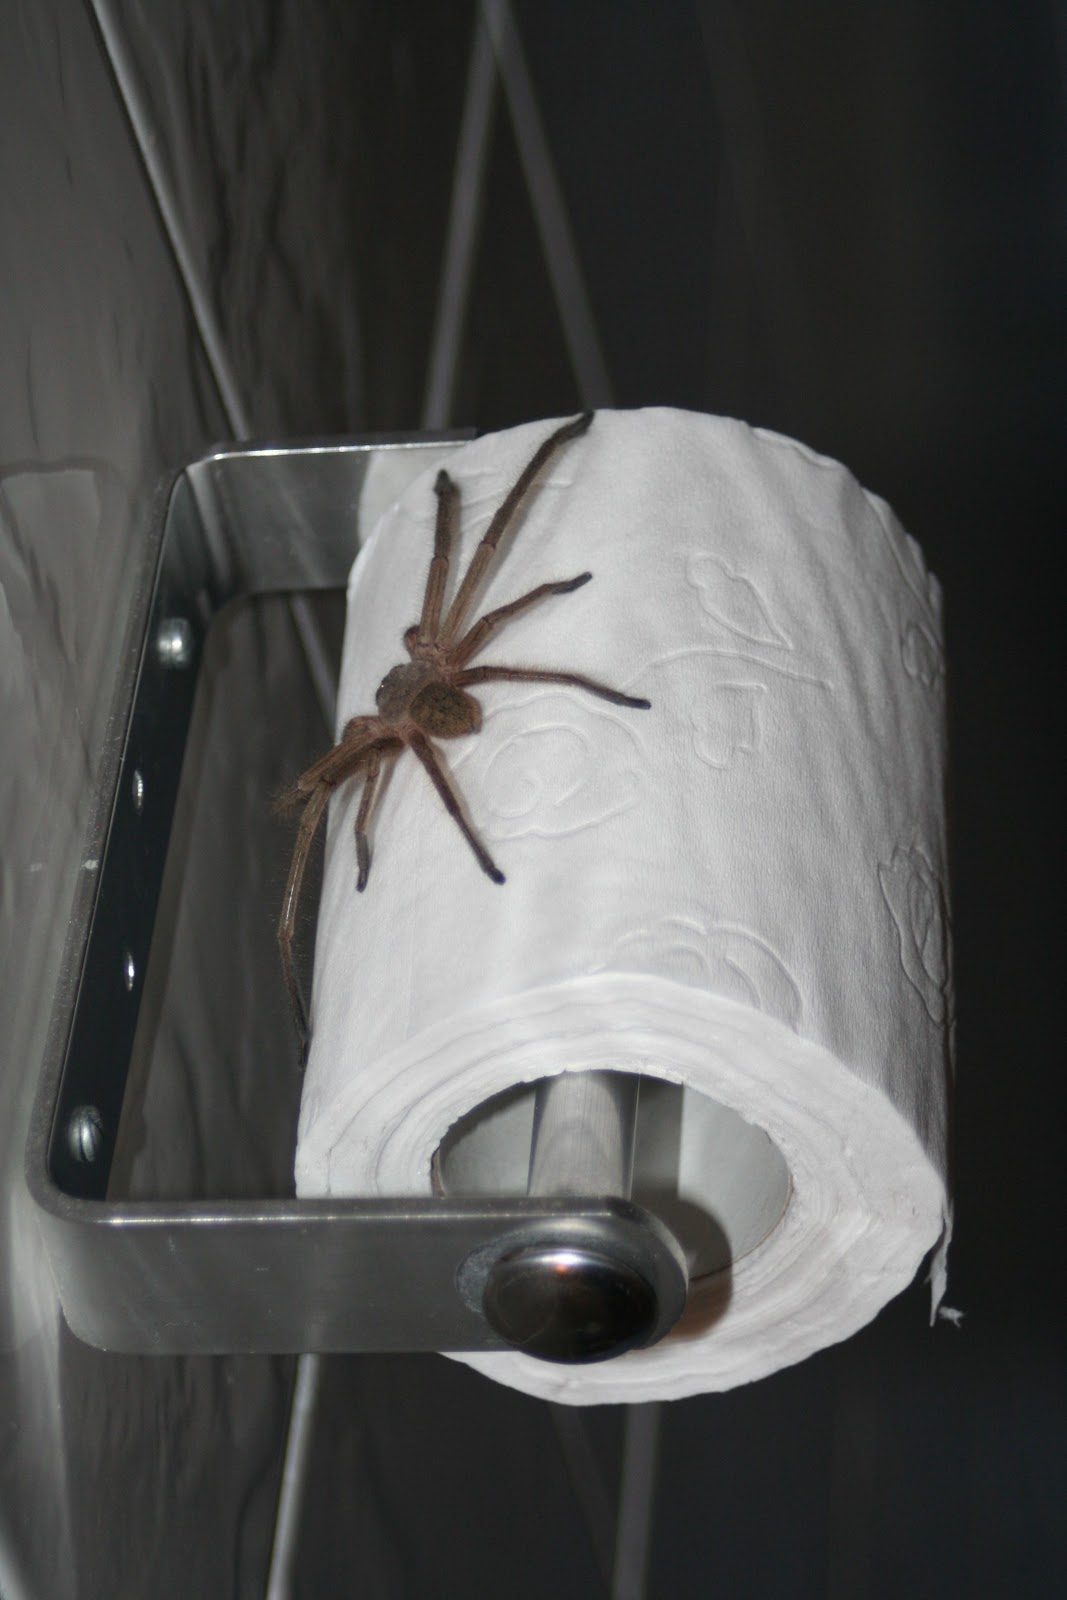 Drawn spider toilet paper Spiders Video Crafthubs Debate Paper